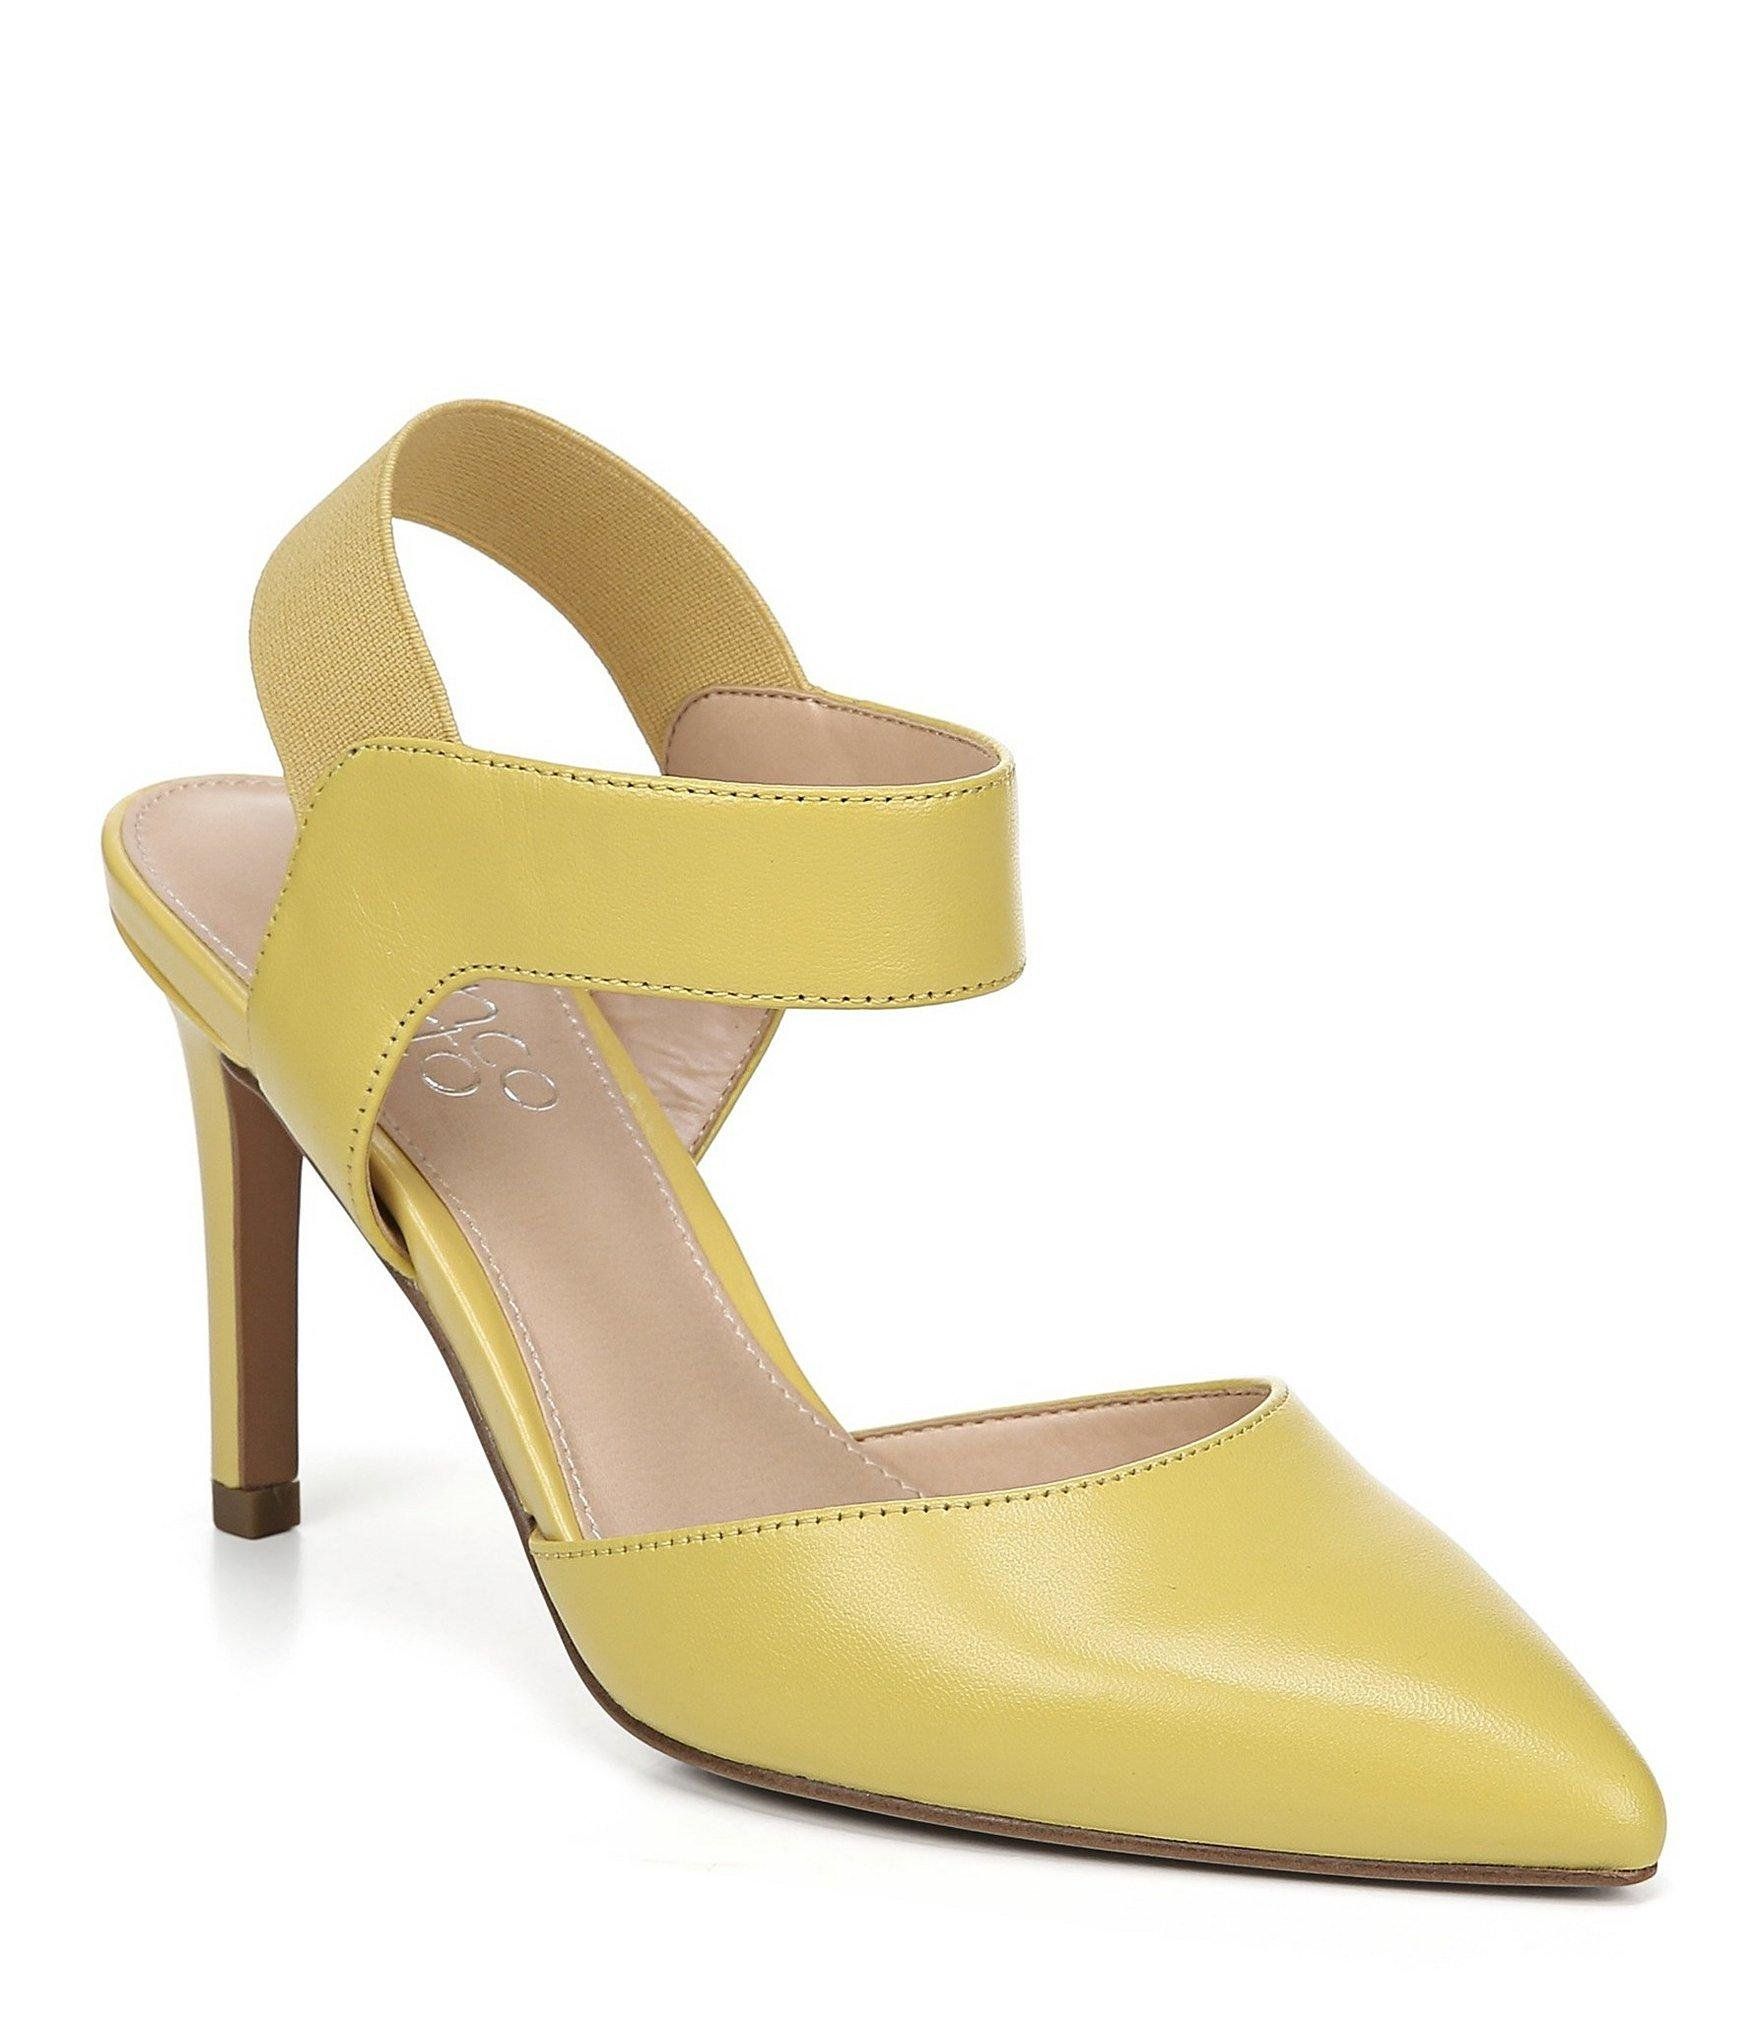 7e64858d5 Lyst - Franco Sarto Lima Leather D'orsay Pumps in Yellow